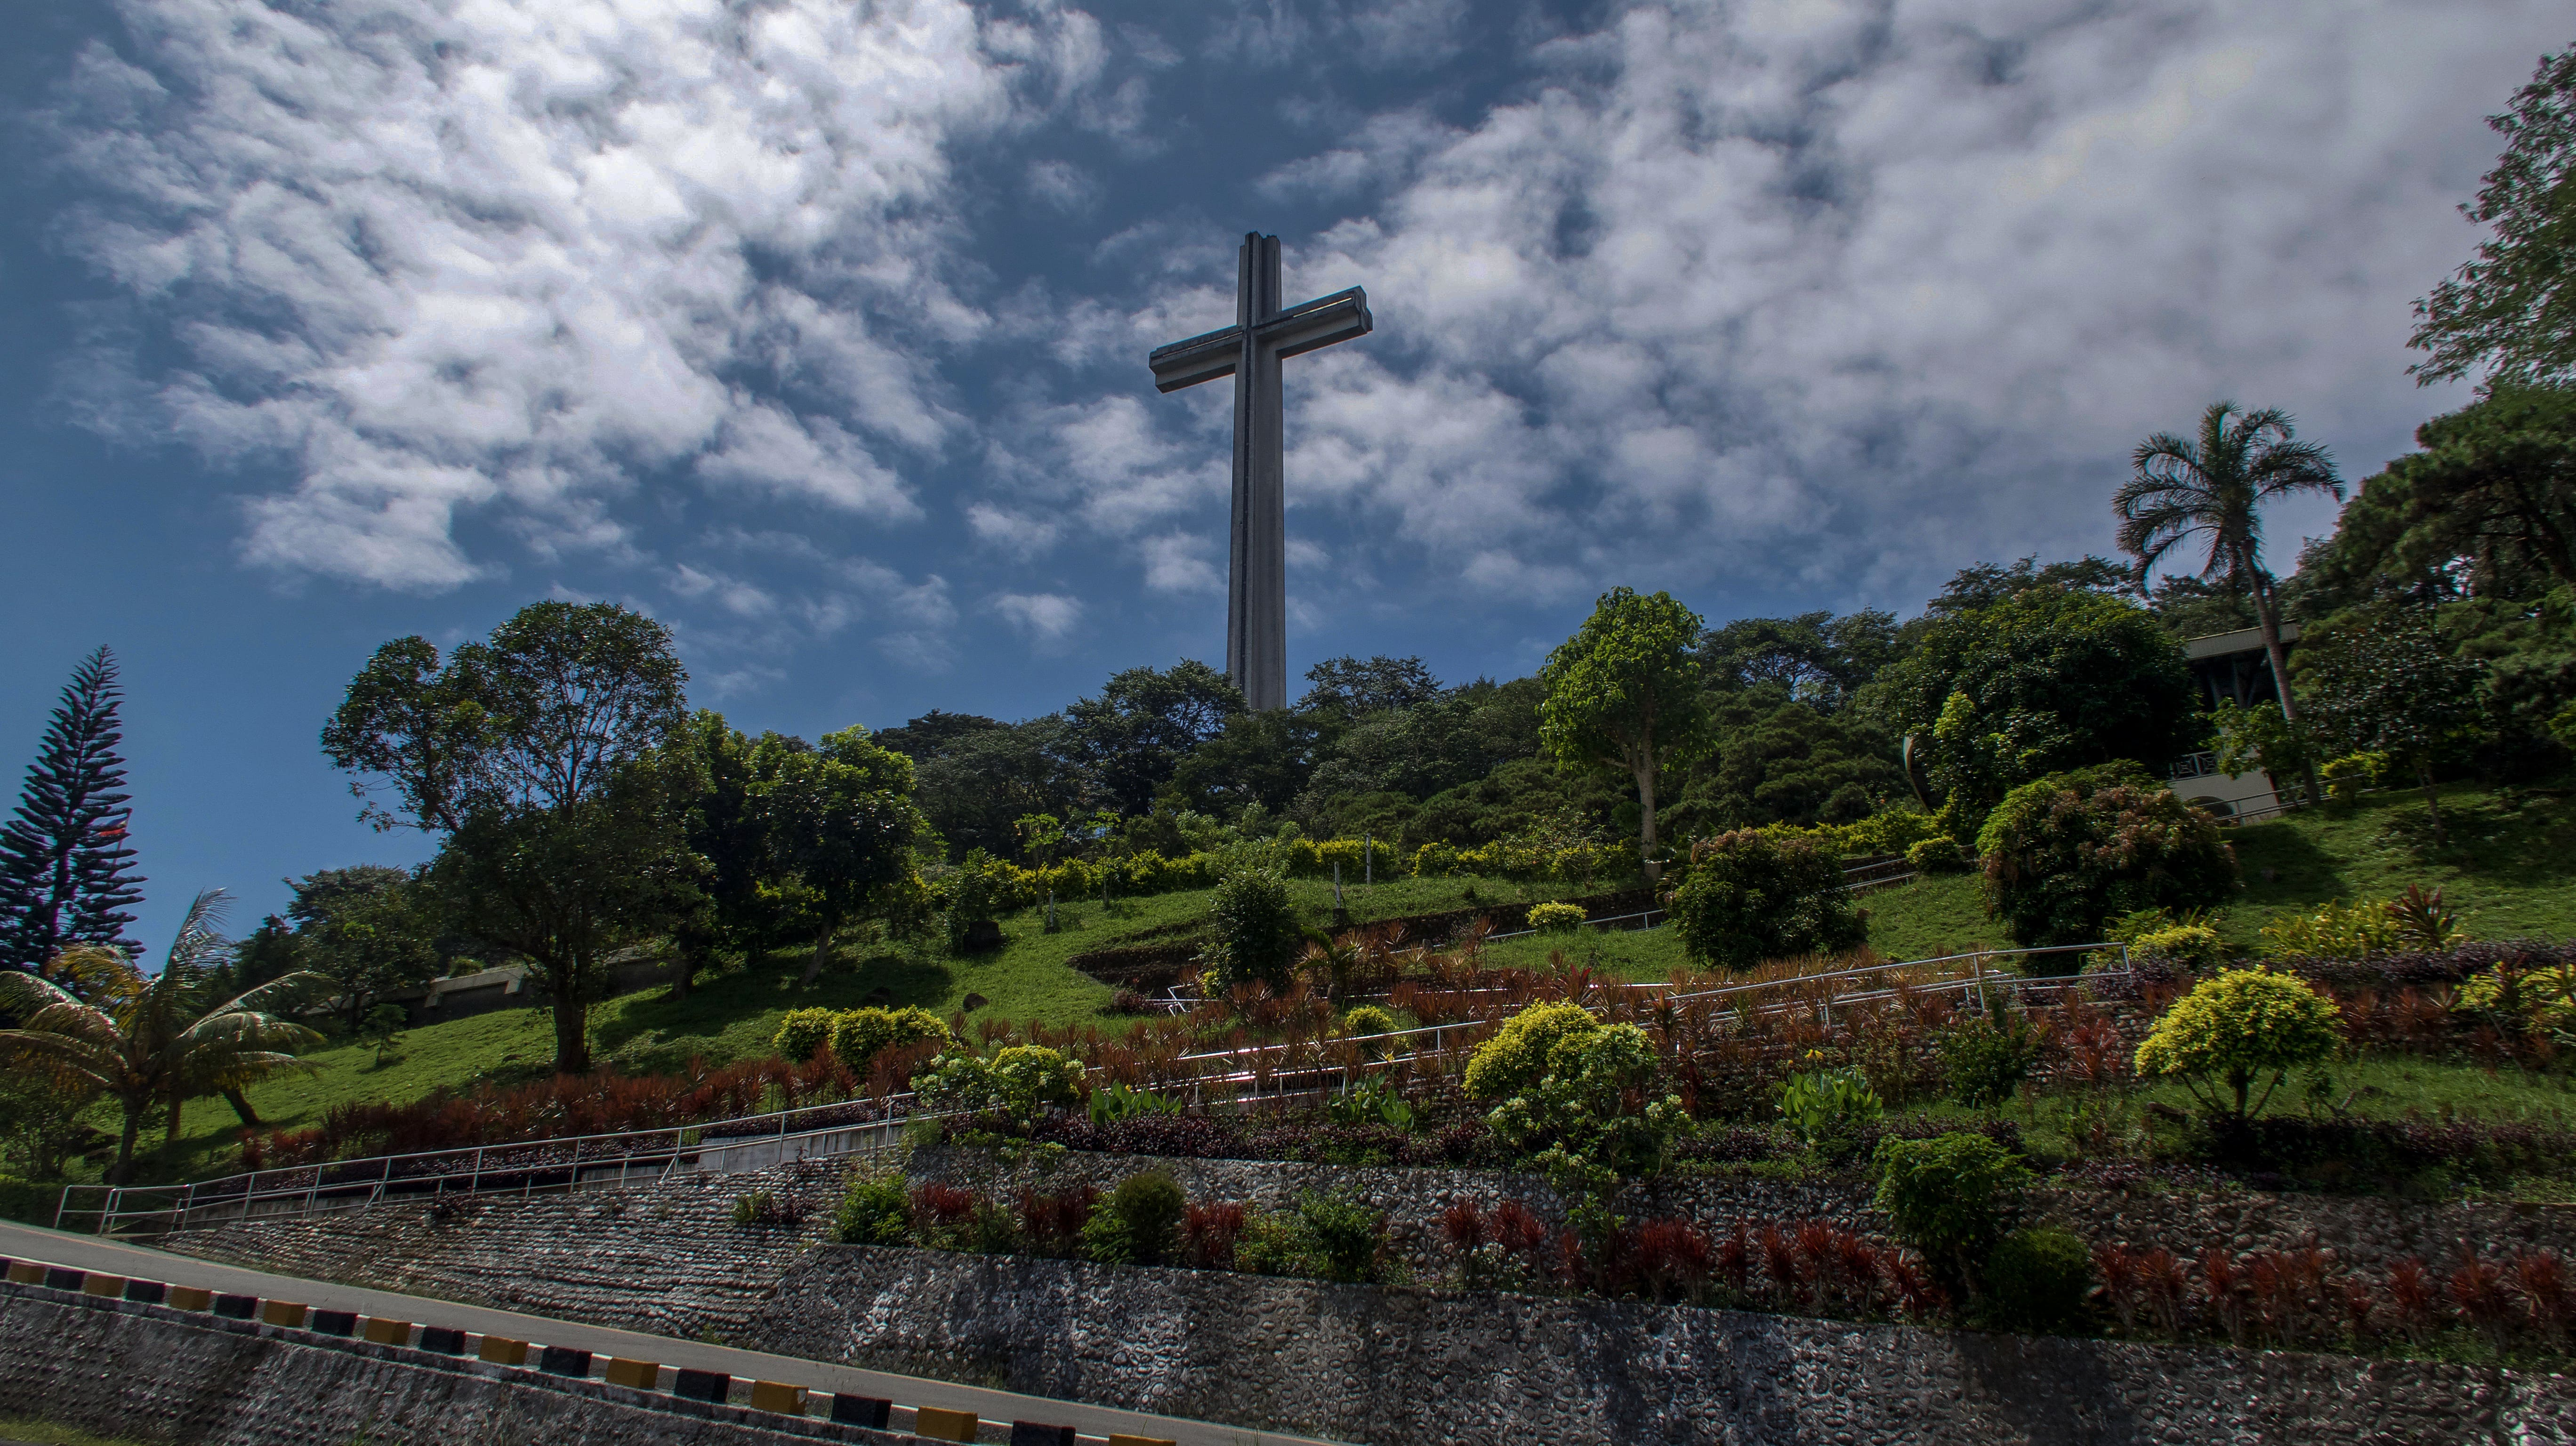 Memorial cross and well maintained gardens in bataan philippines